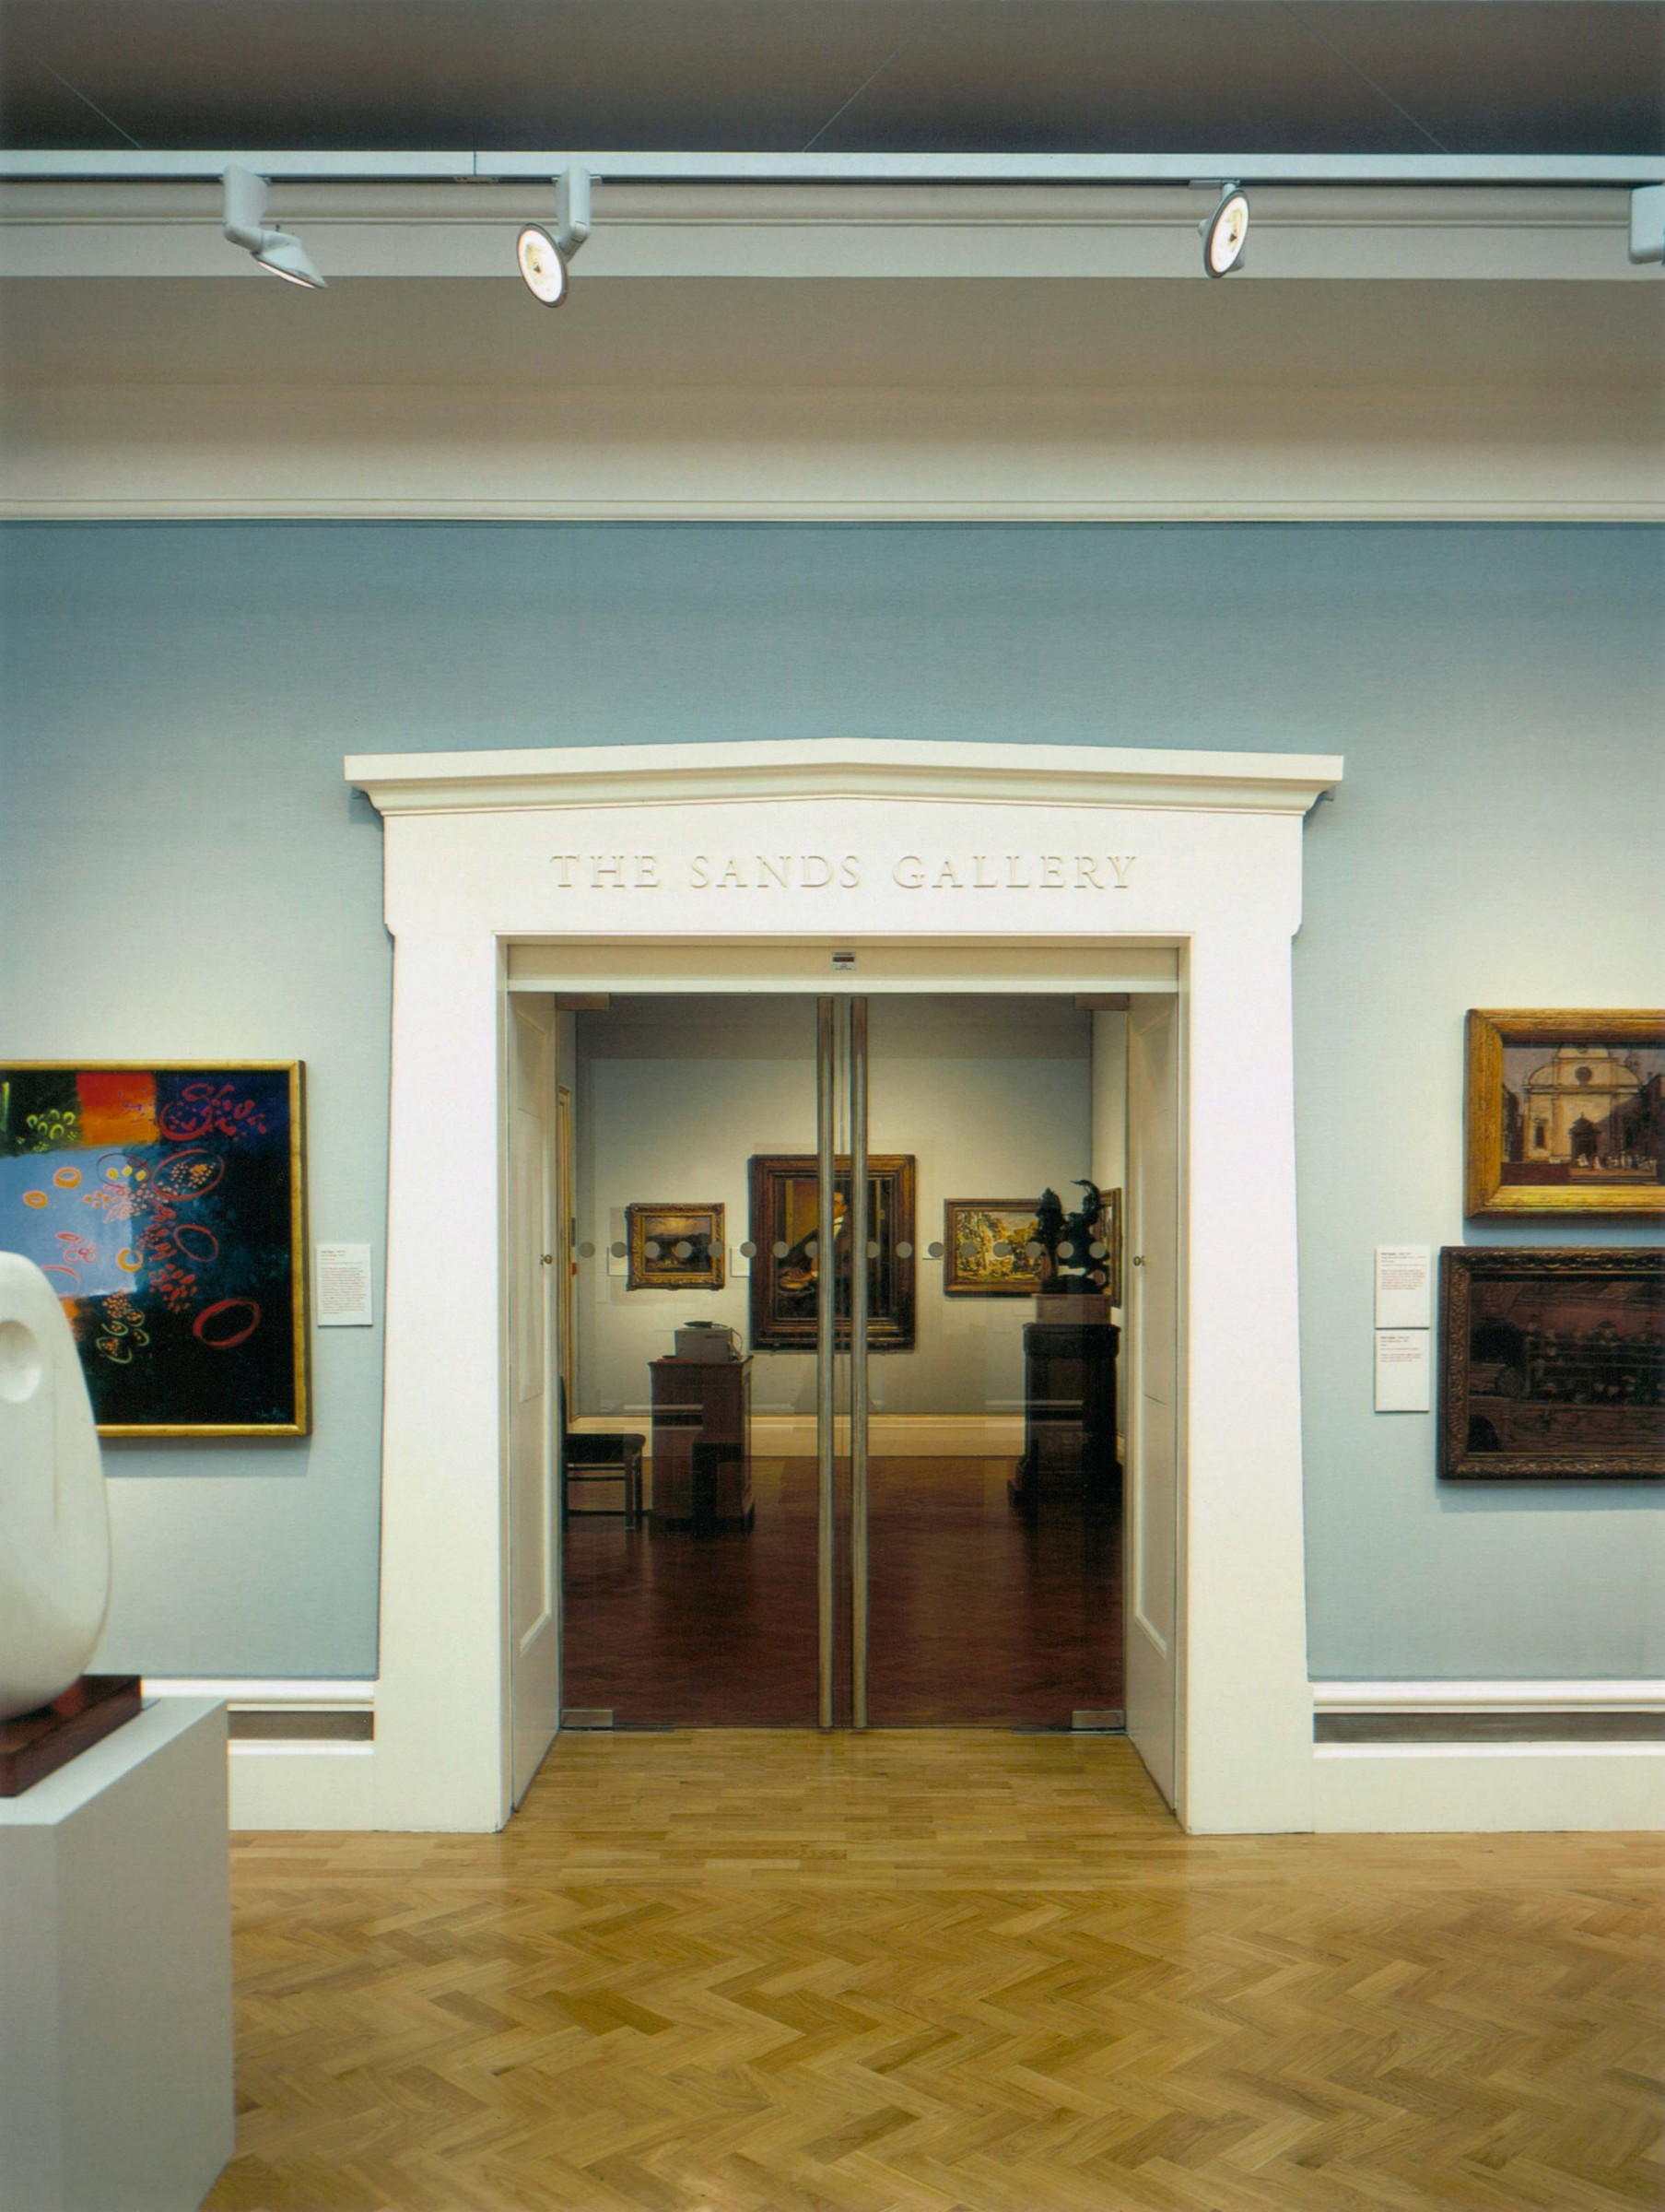 Sands Gallery at the Ashmolean Museum, Oxford